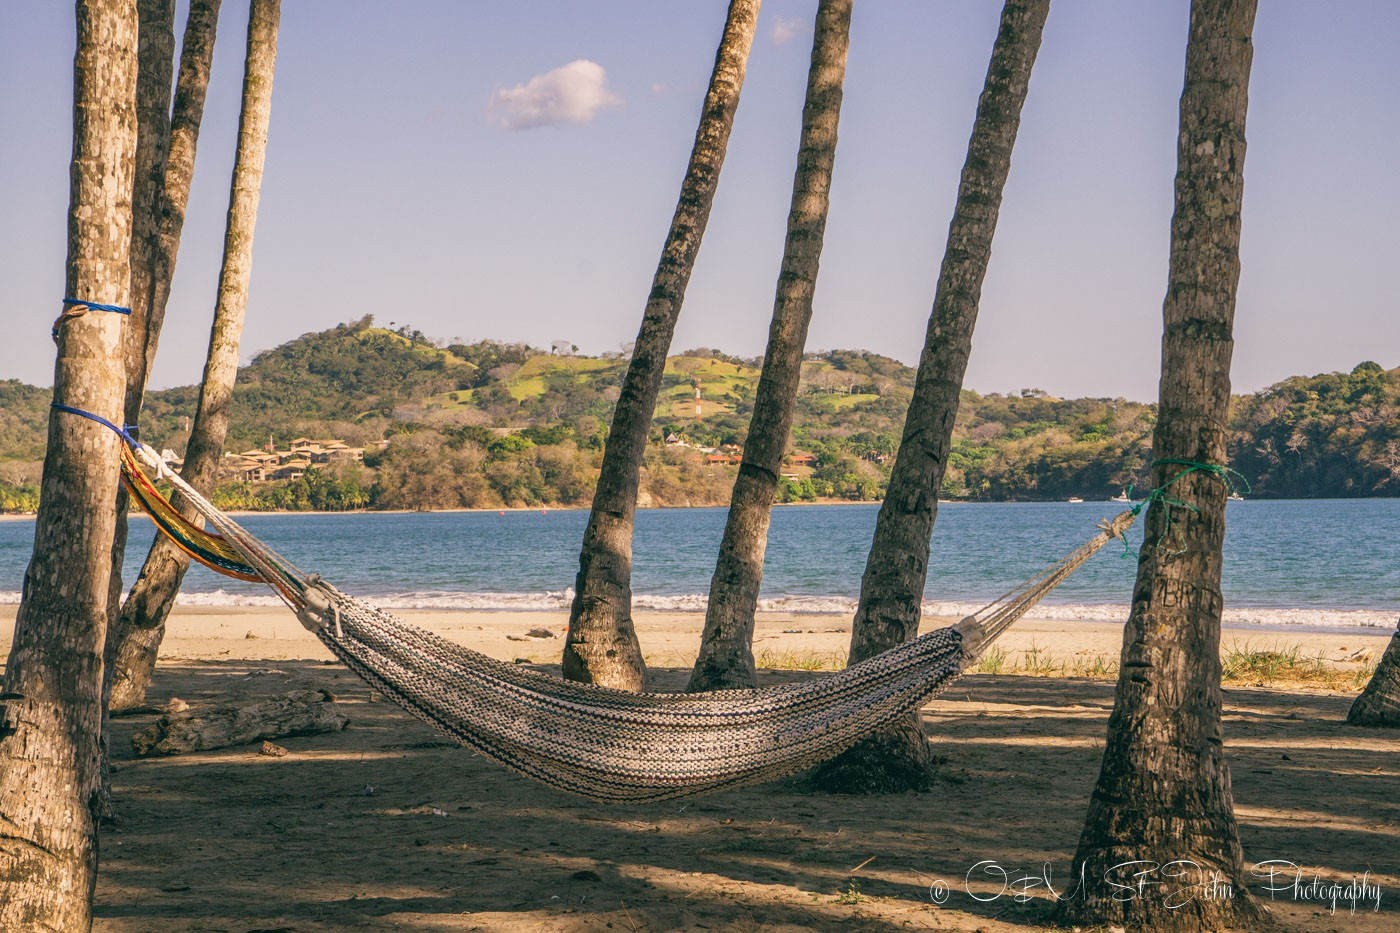 The perfect place to relax in Samara Costa Rica